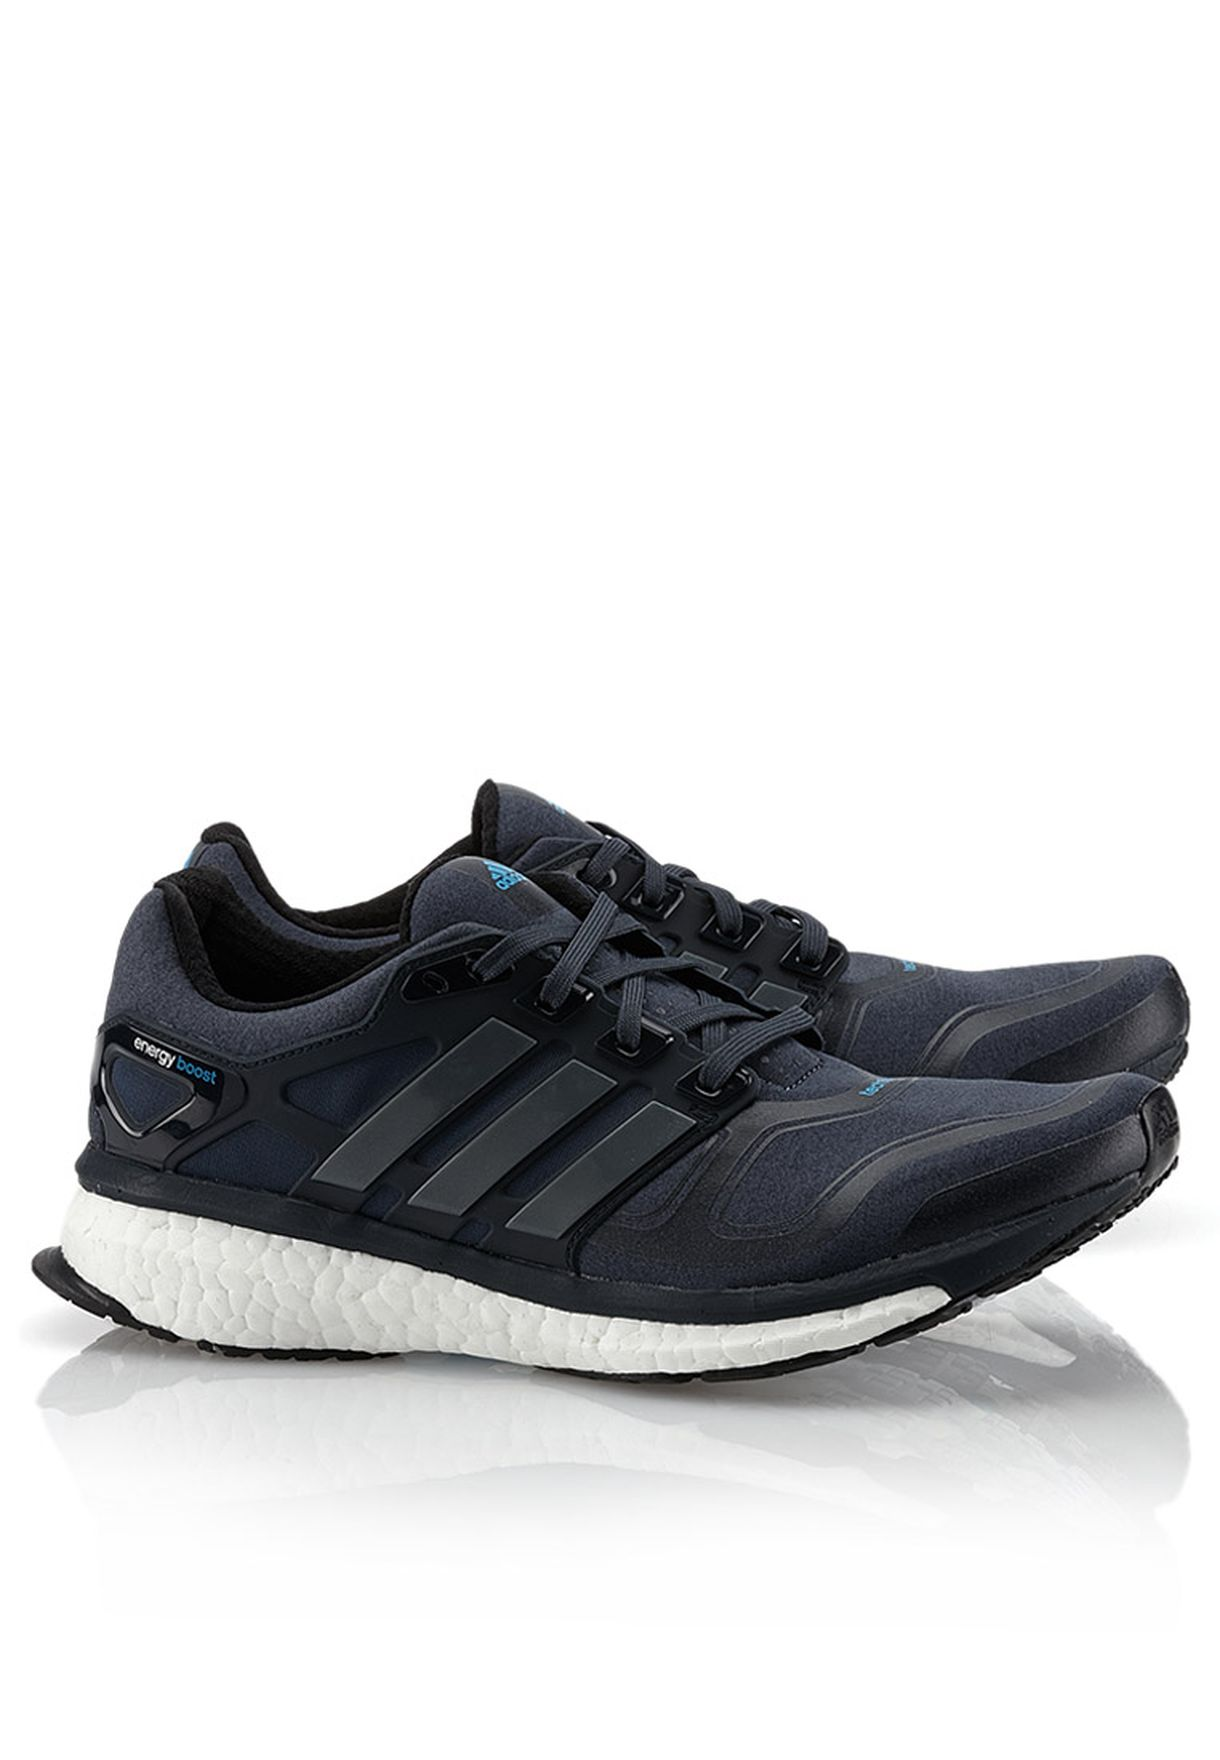 663337444b0cb ... sale shop adidas grey energy boost 2 w d66257 for women in uae  ad476sh36thj 60af6 75451